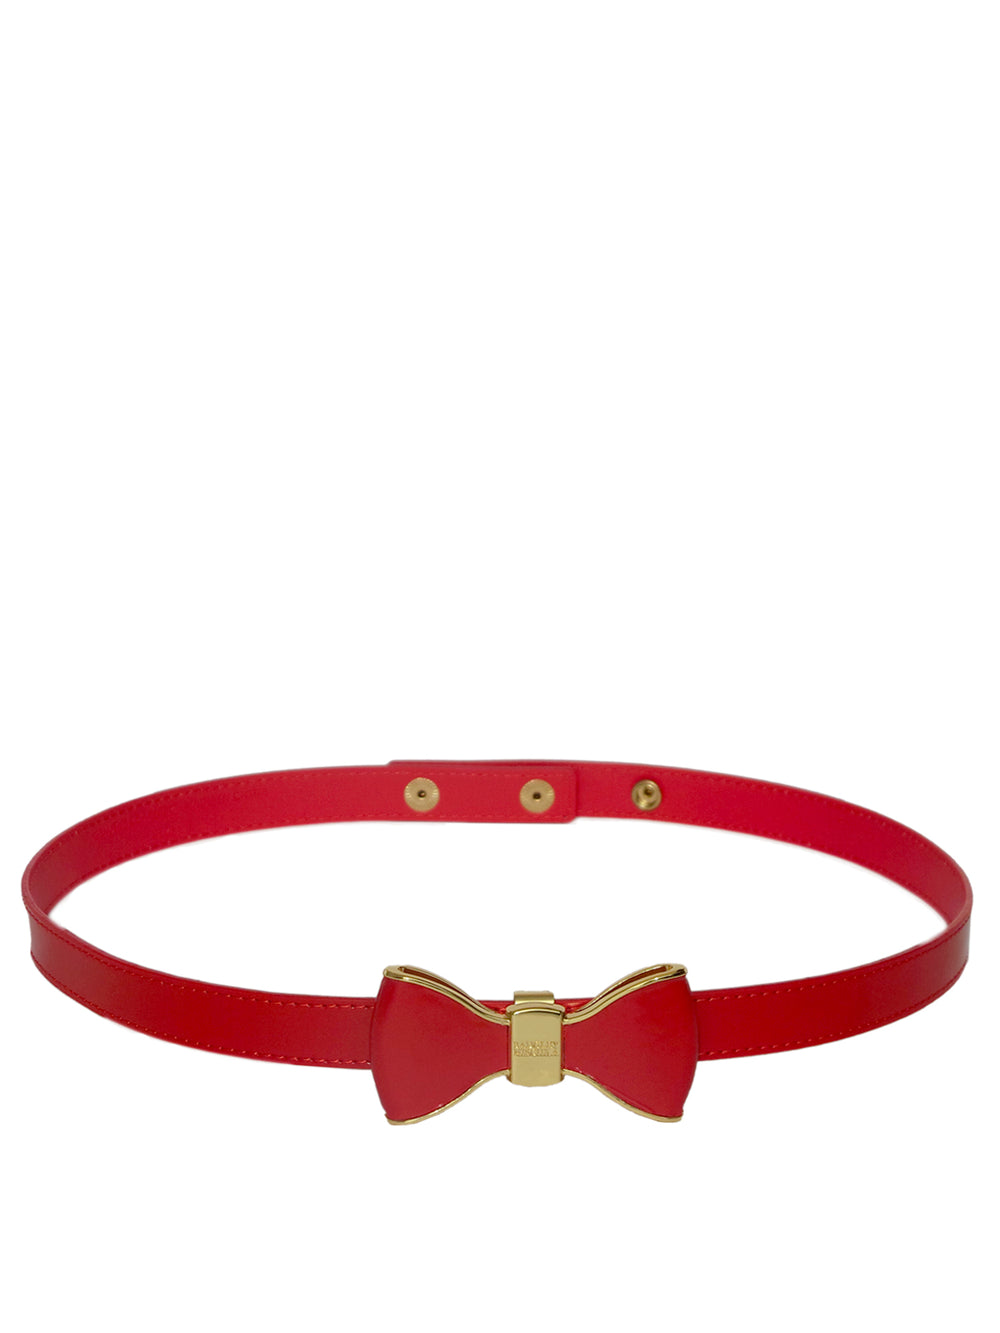 Red Metal Bow Leather Belt, Accessories,Designers, BADGLEY MISCHKA - elilhaam.com